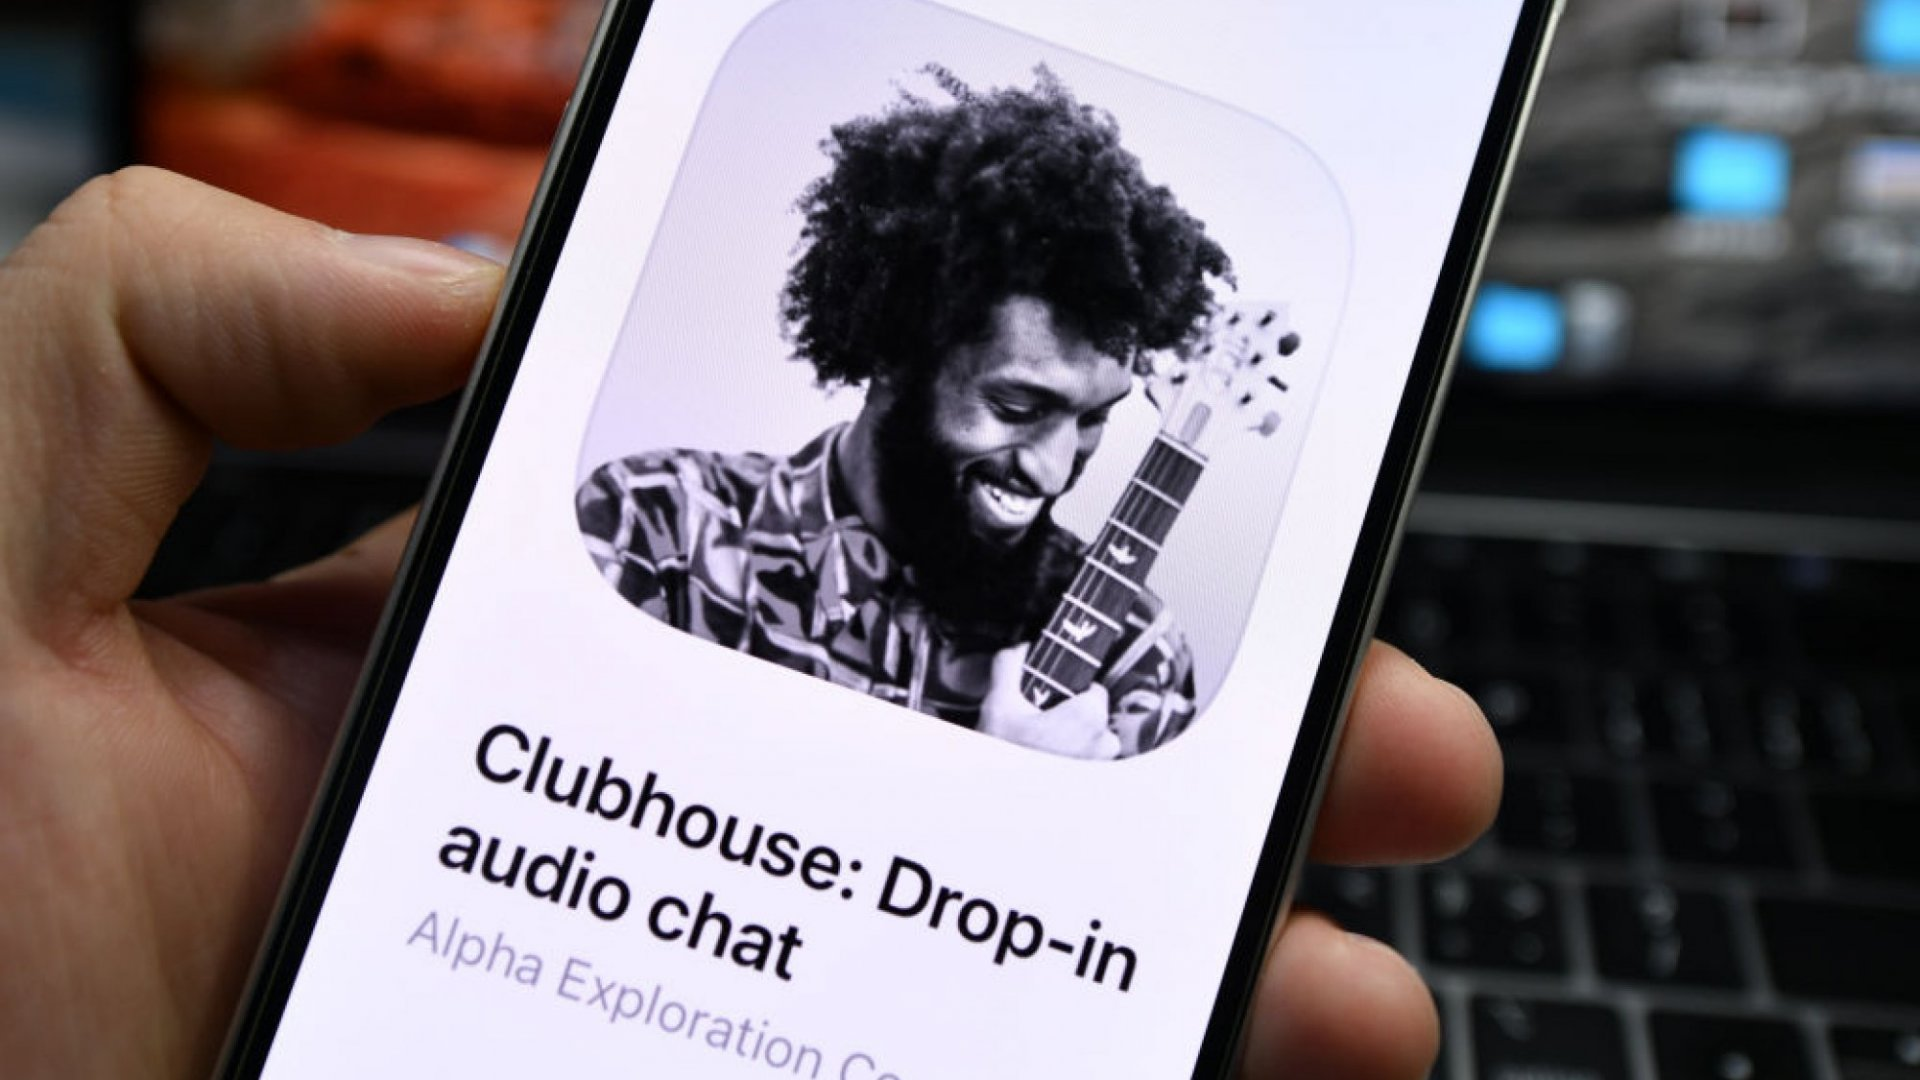 Clubhouse Is Recording Your Conversations. That's Not Even Its Worst Privacy Problem